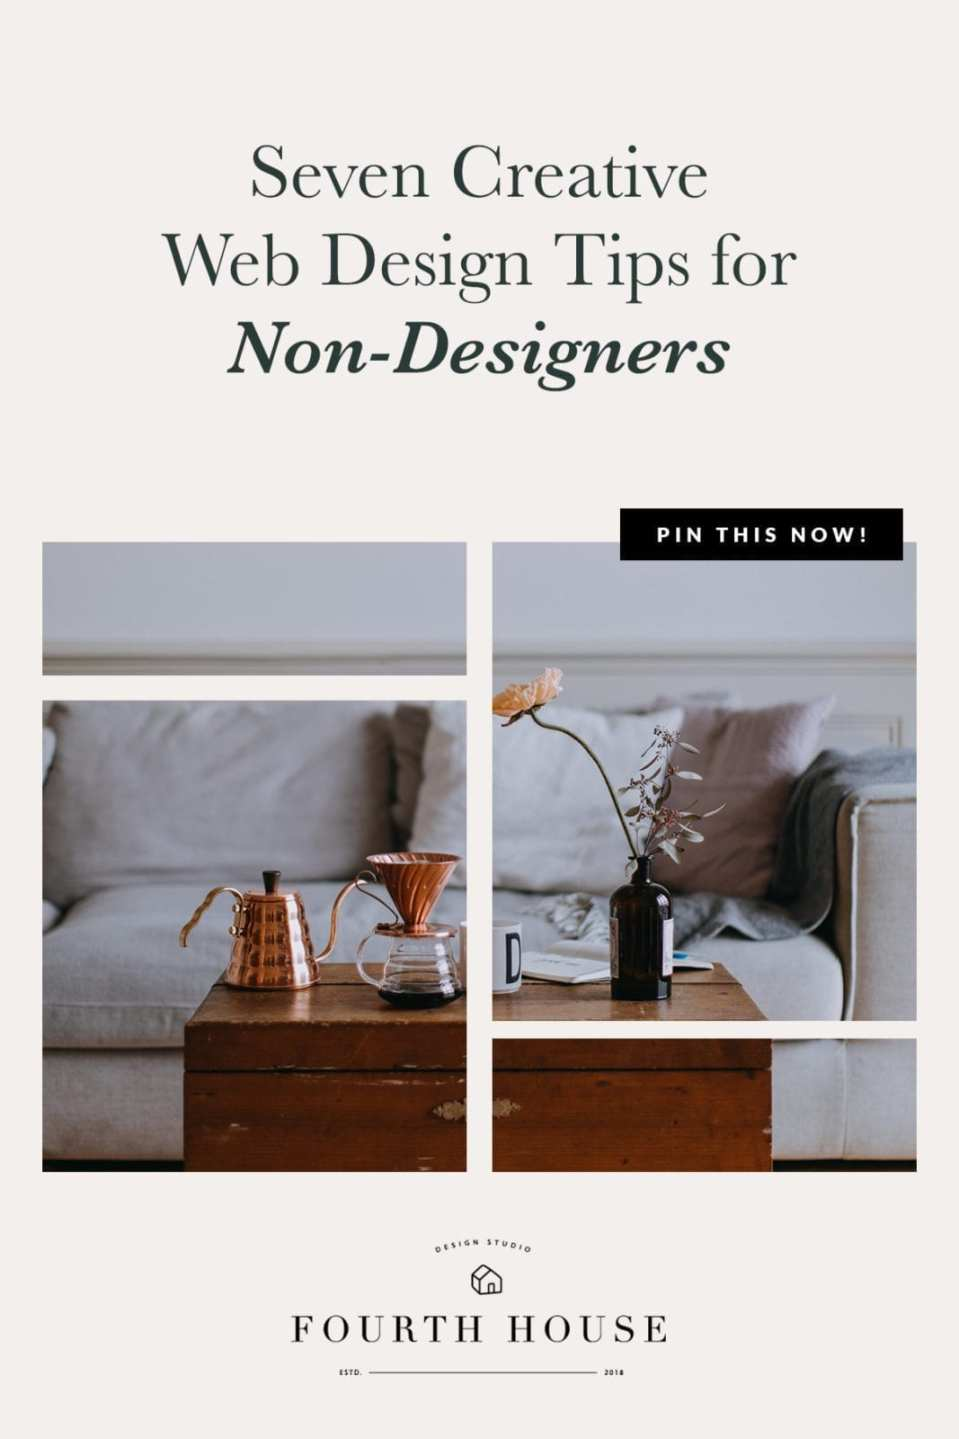 Creative web design isn't always about colors and typography - finding strategic ways to use icons and images to show instead of tell is a powerful tool. Open this post for 7 easy ways anyone can boost their website's creativity without a fancy design degree (or wasting a bunch of hours). #websitedesign #websiteredesign #showit #showitdesign #websiteinspiration #diywebdesign